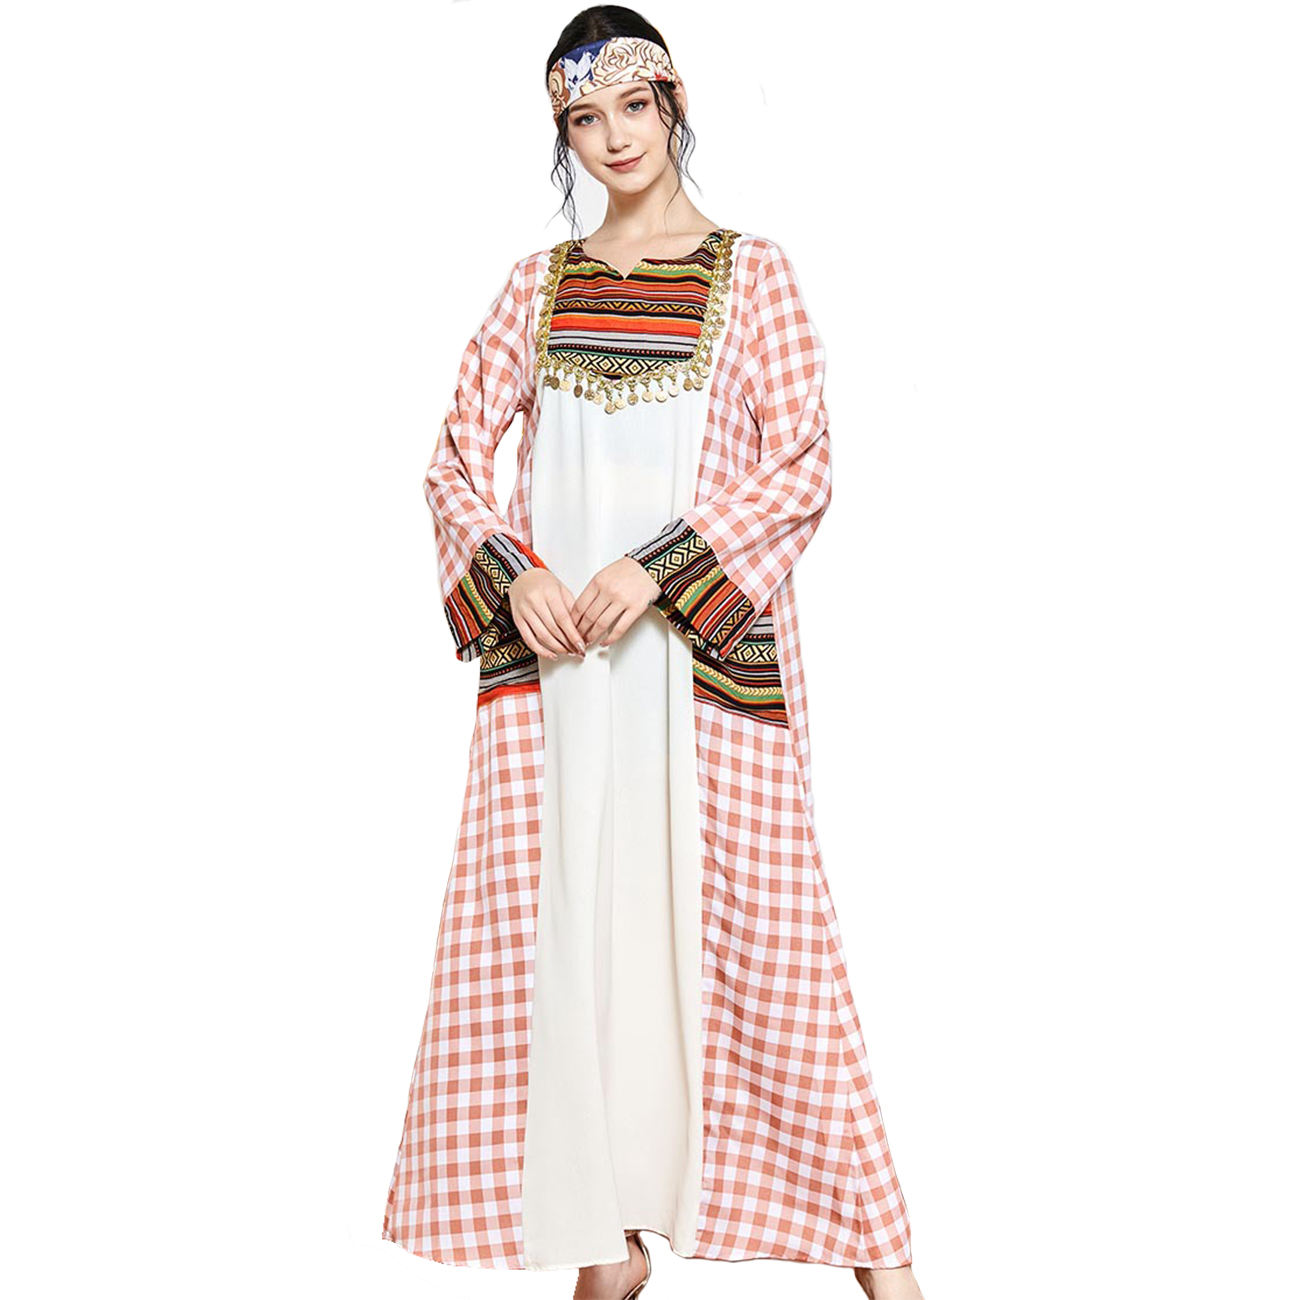 High Quality embroidery fashion Long Sleeve Islamic Clothing Muslim Dress Abaya kaftan dress Robe nightgown